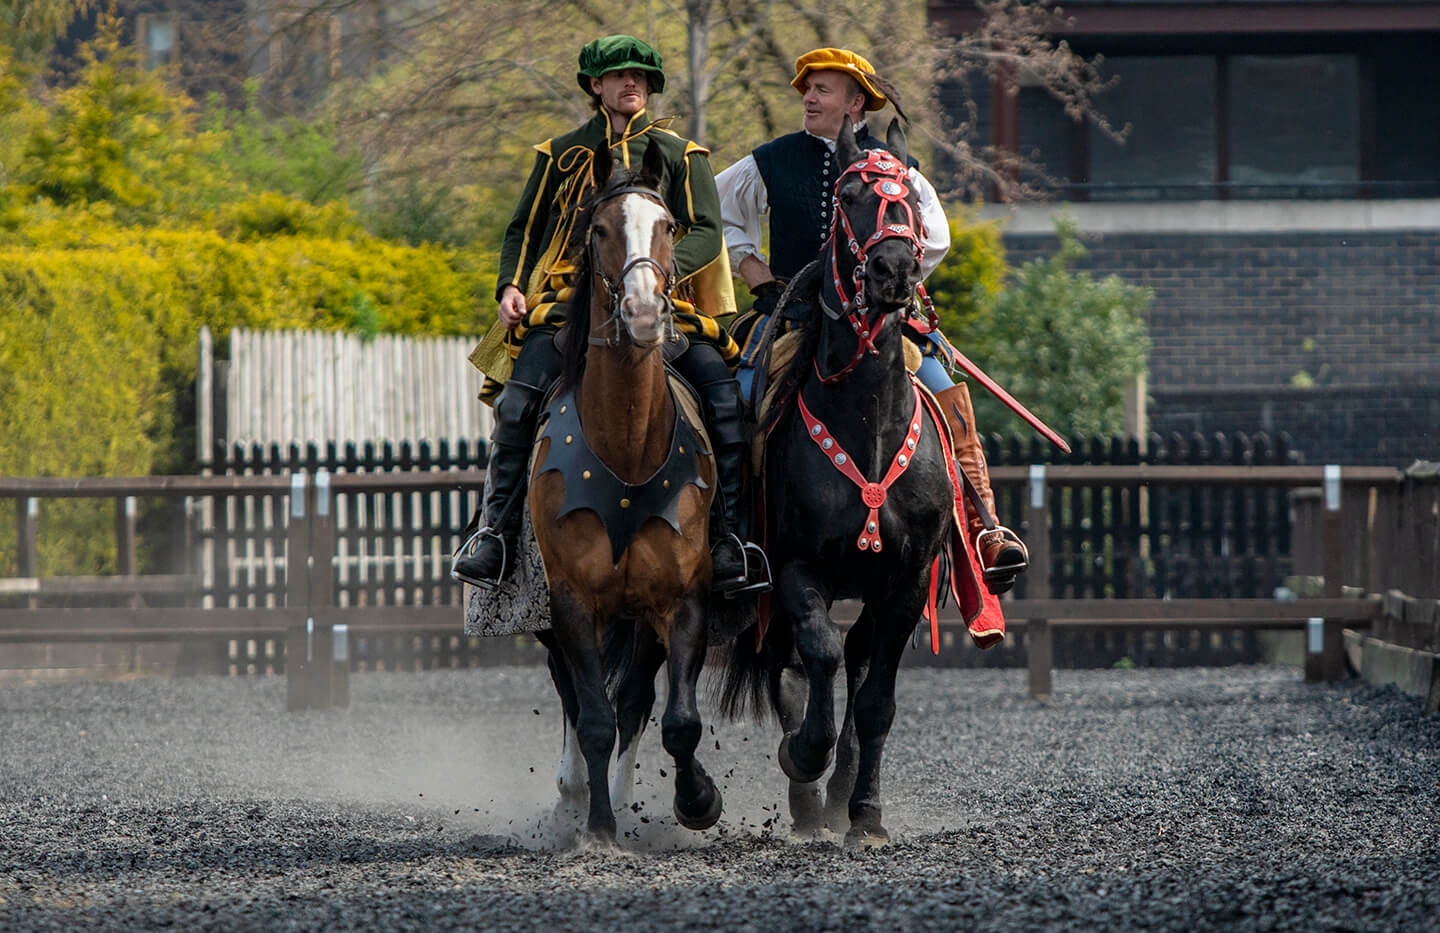 rider in green cloak 'running at the ring'